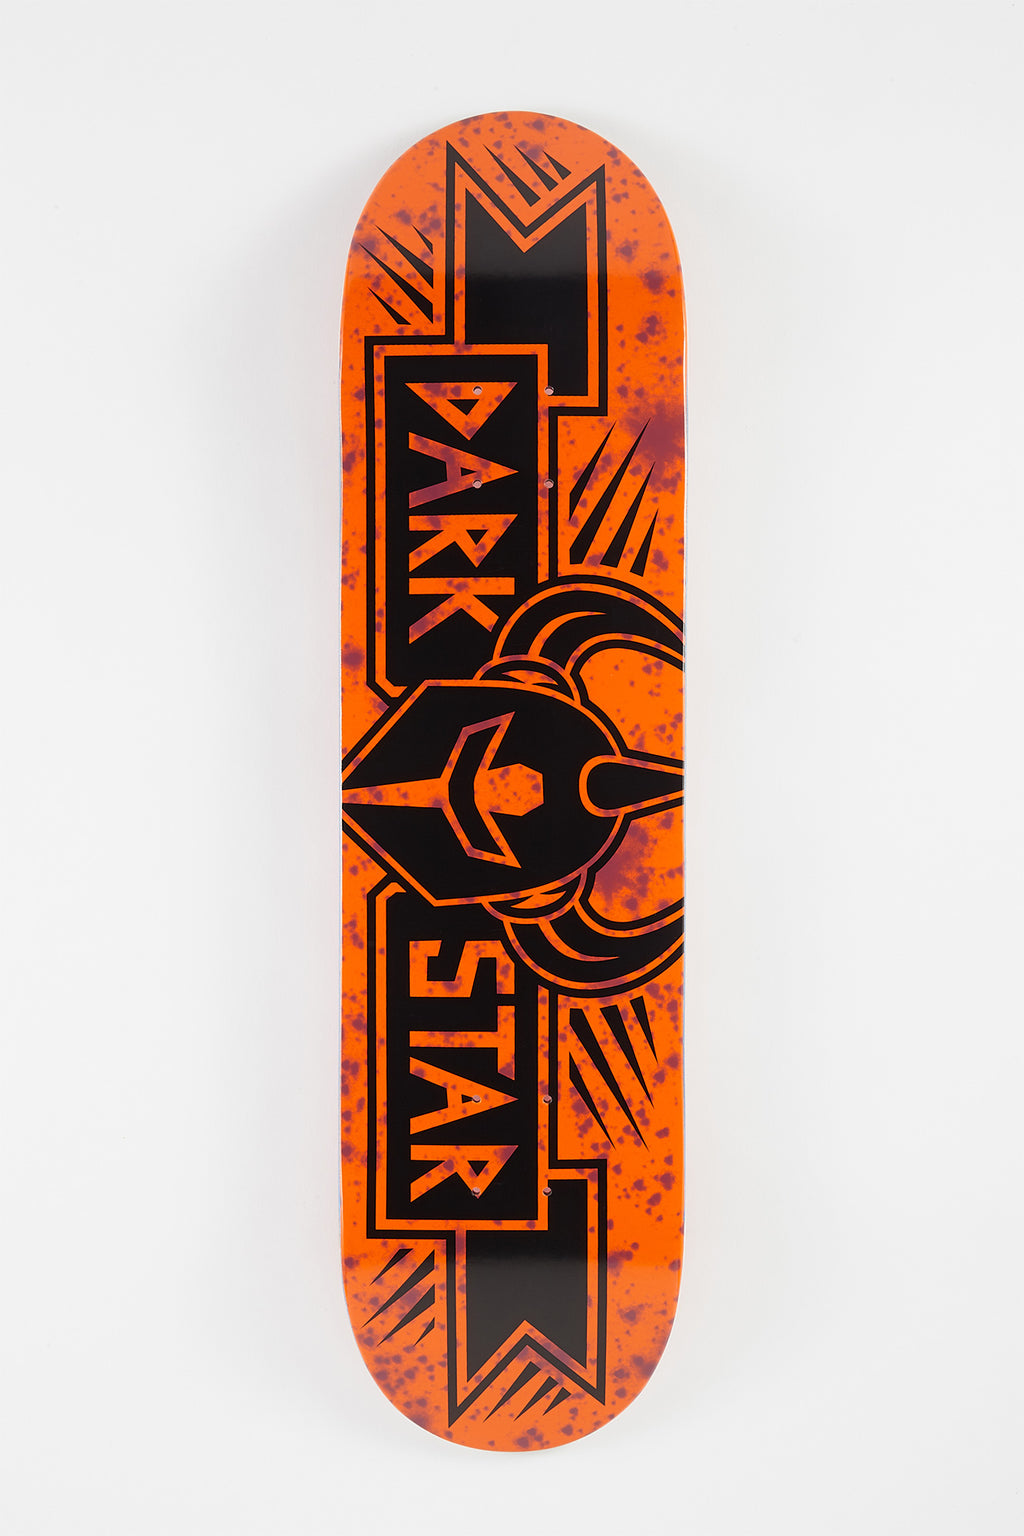 Darkstar Grand 8.0 Skateboard Deck